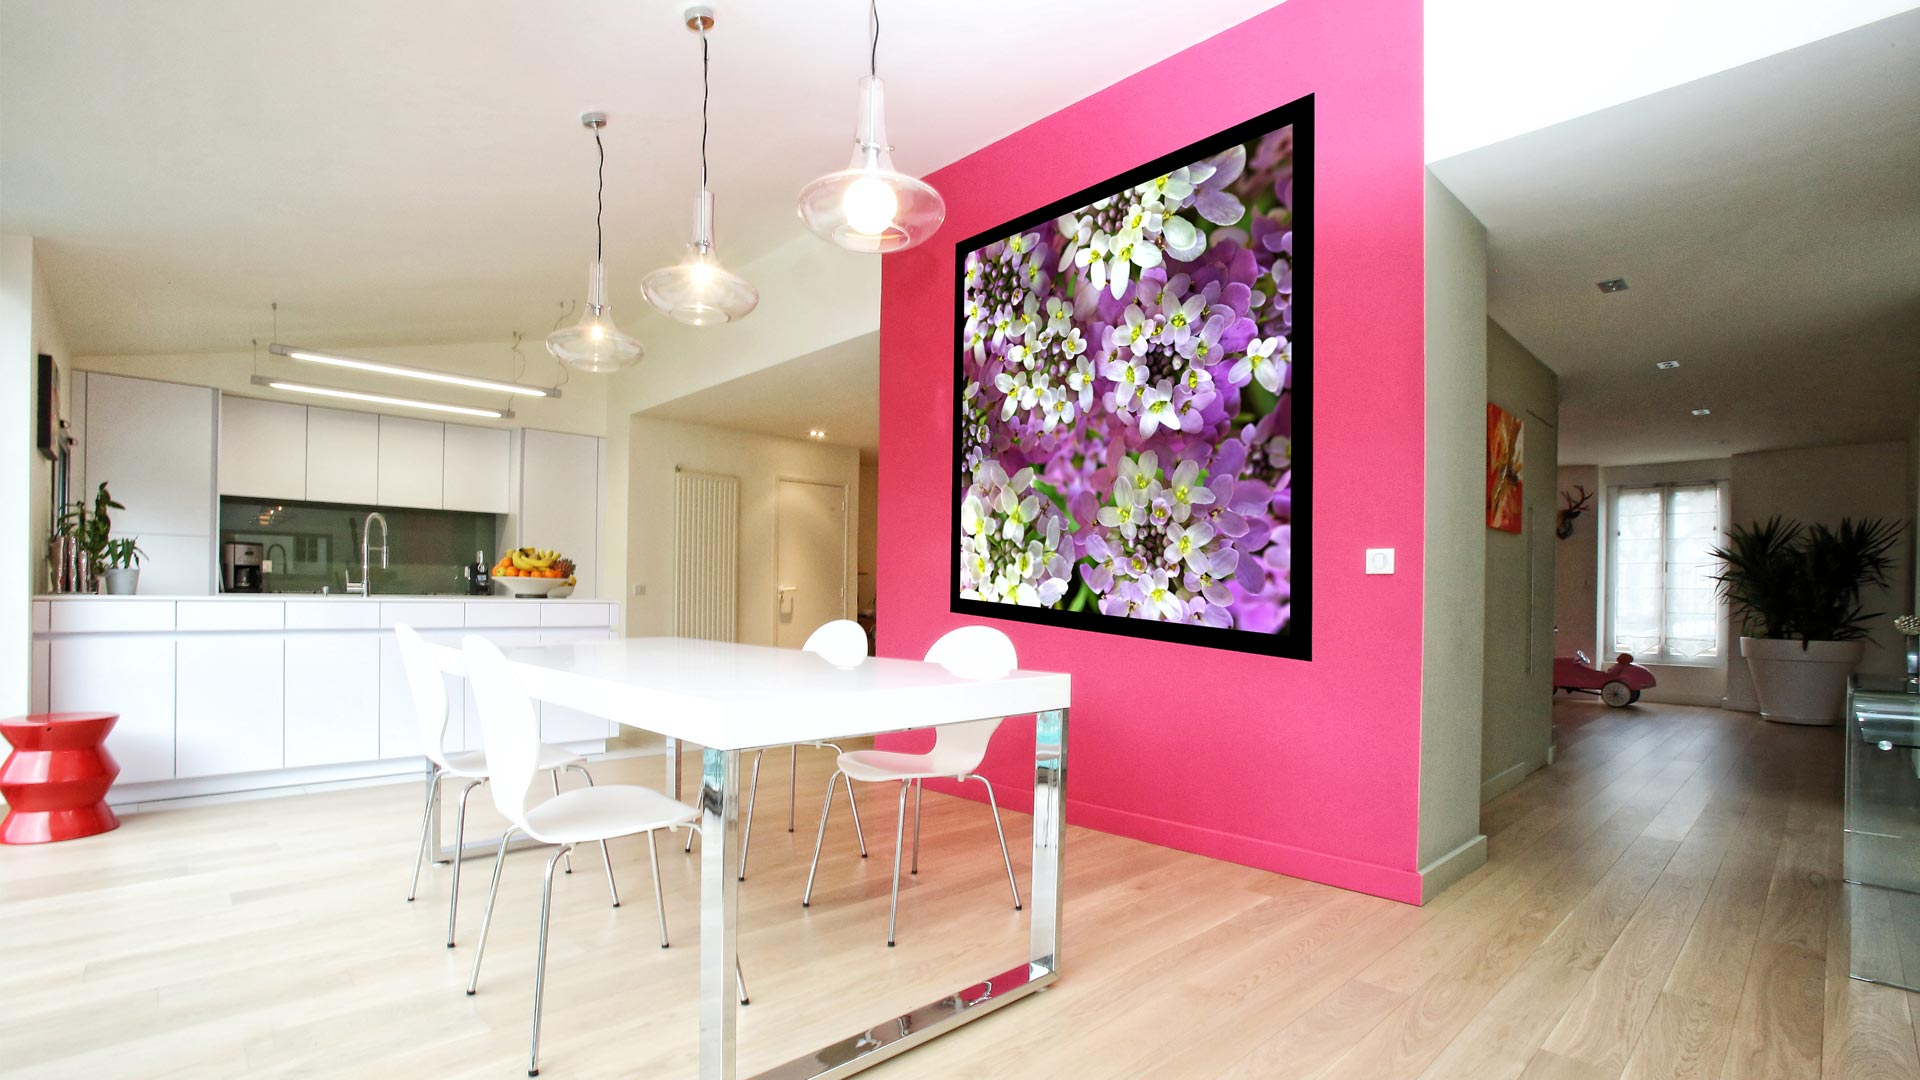 Photo decoration interieure meilleures images d for Decoration interieur